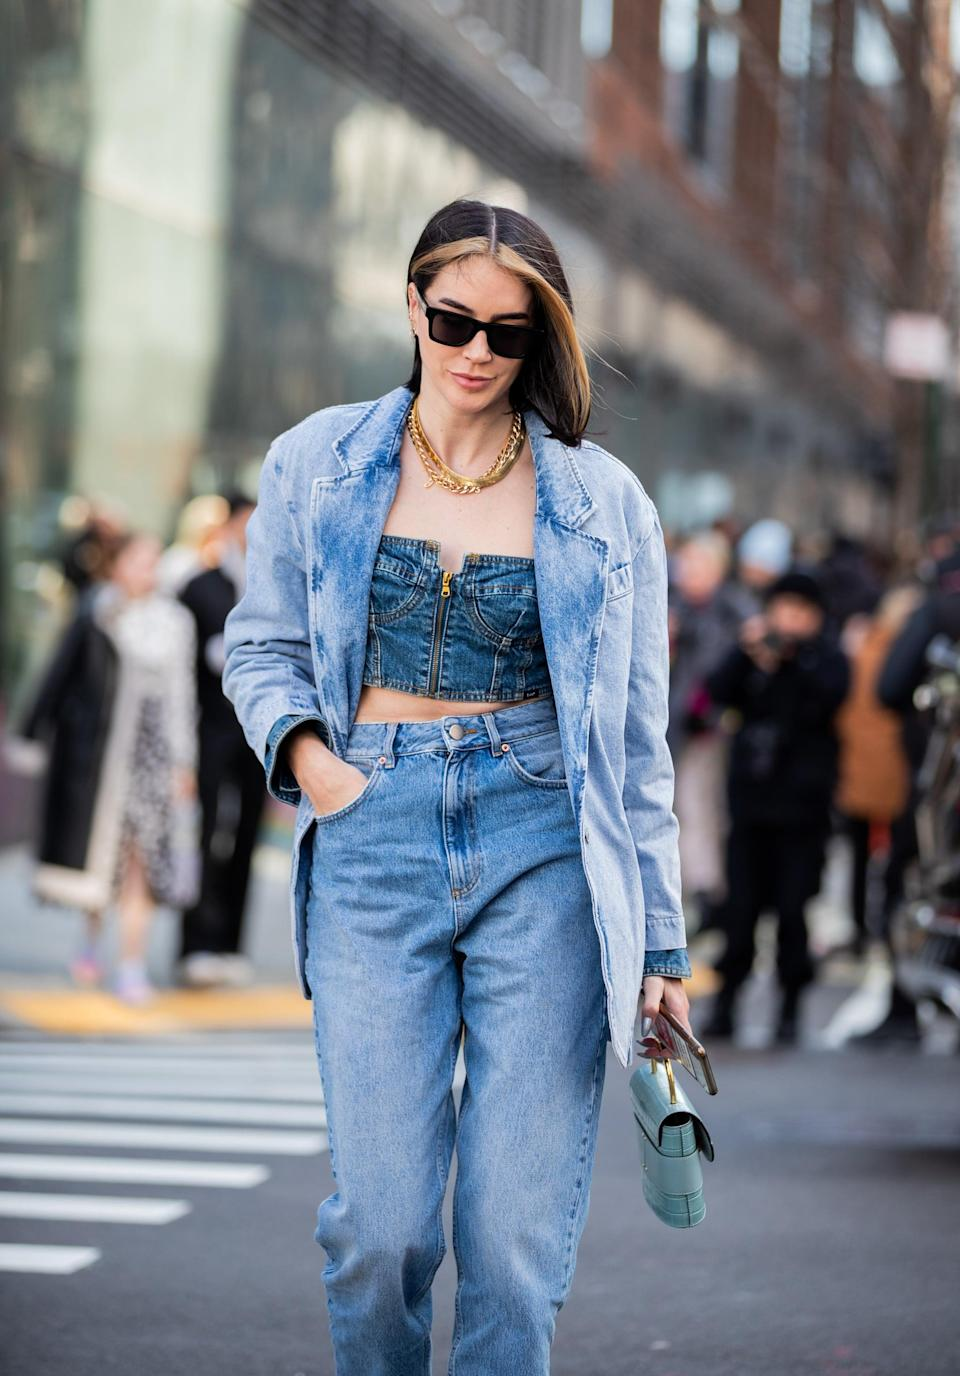 <p>Another '90s-inspired look to try: baggy jeans, a corset top, and a denim jacket. </p>